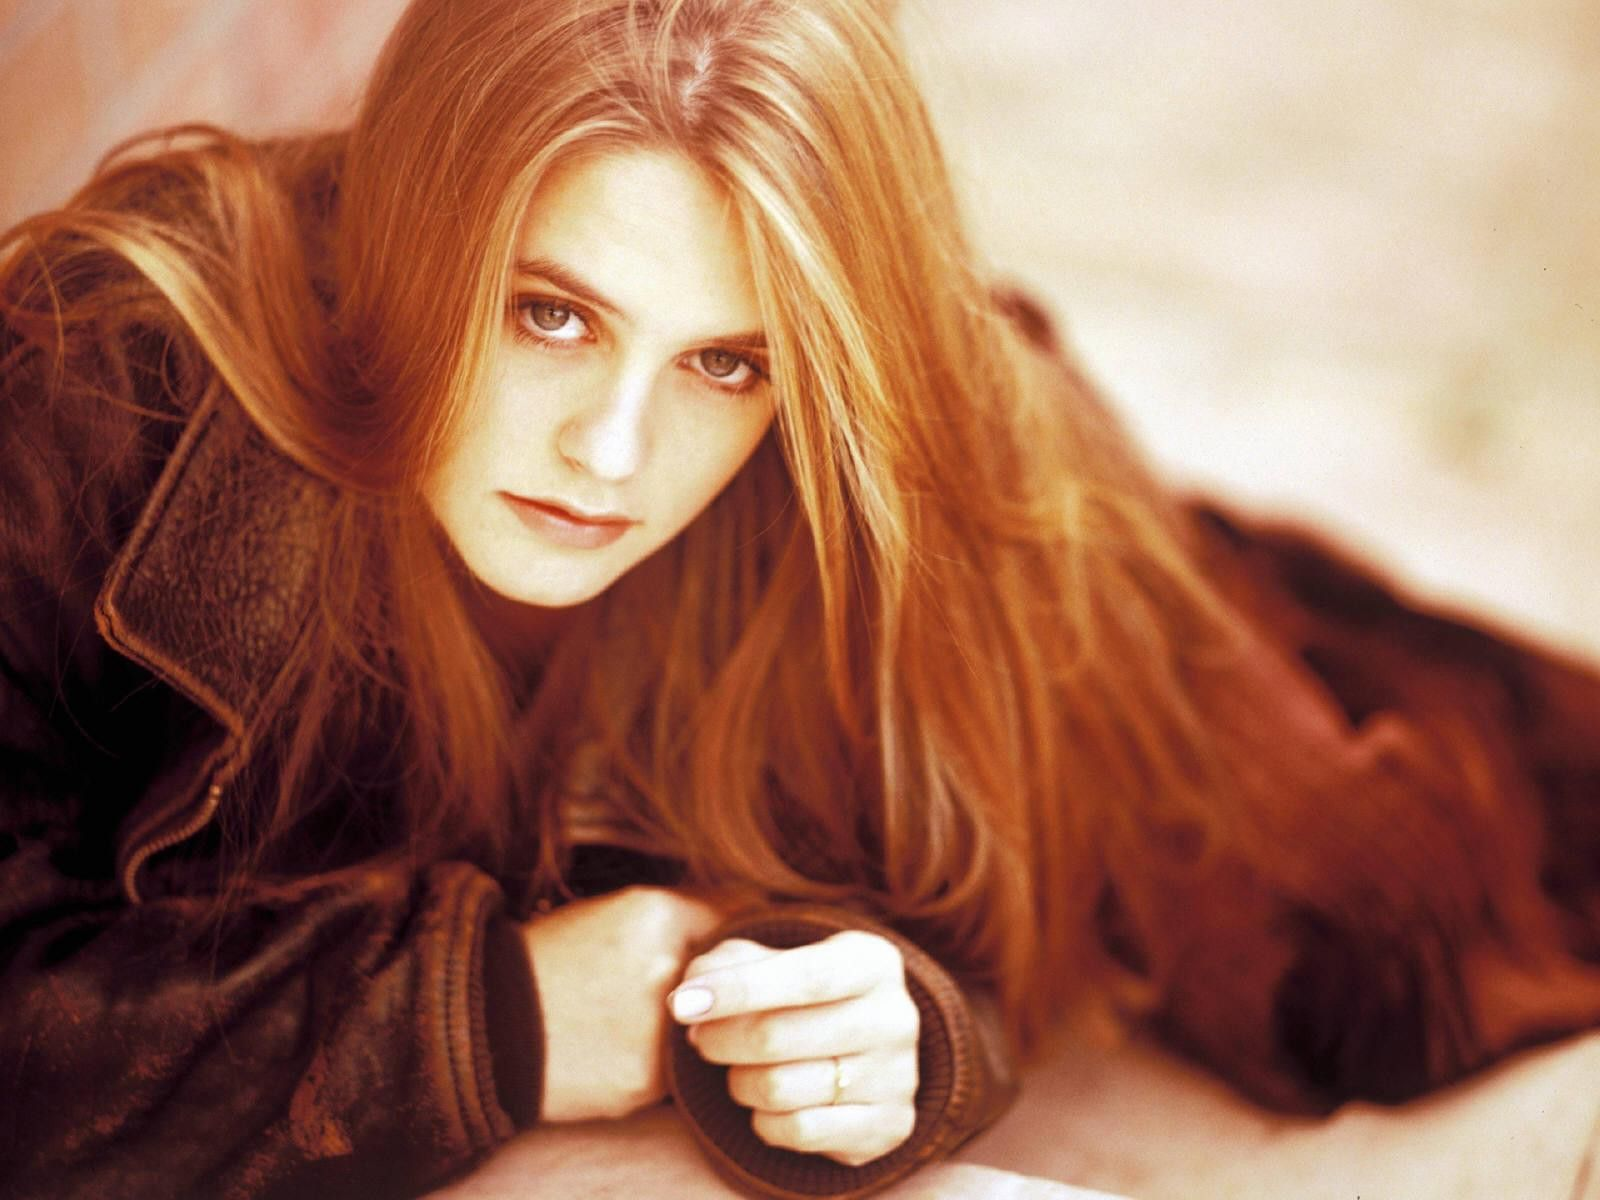 Beauty Actress Alicia Silverstone Wallpapers